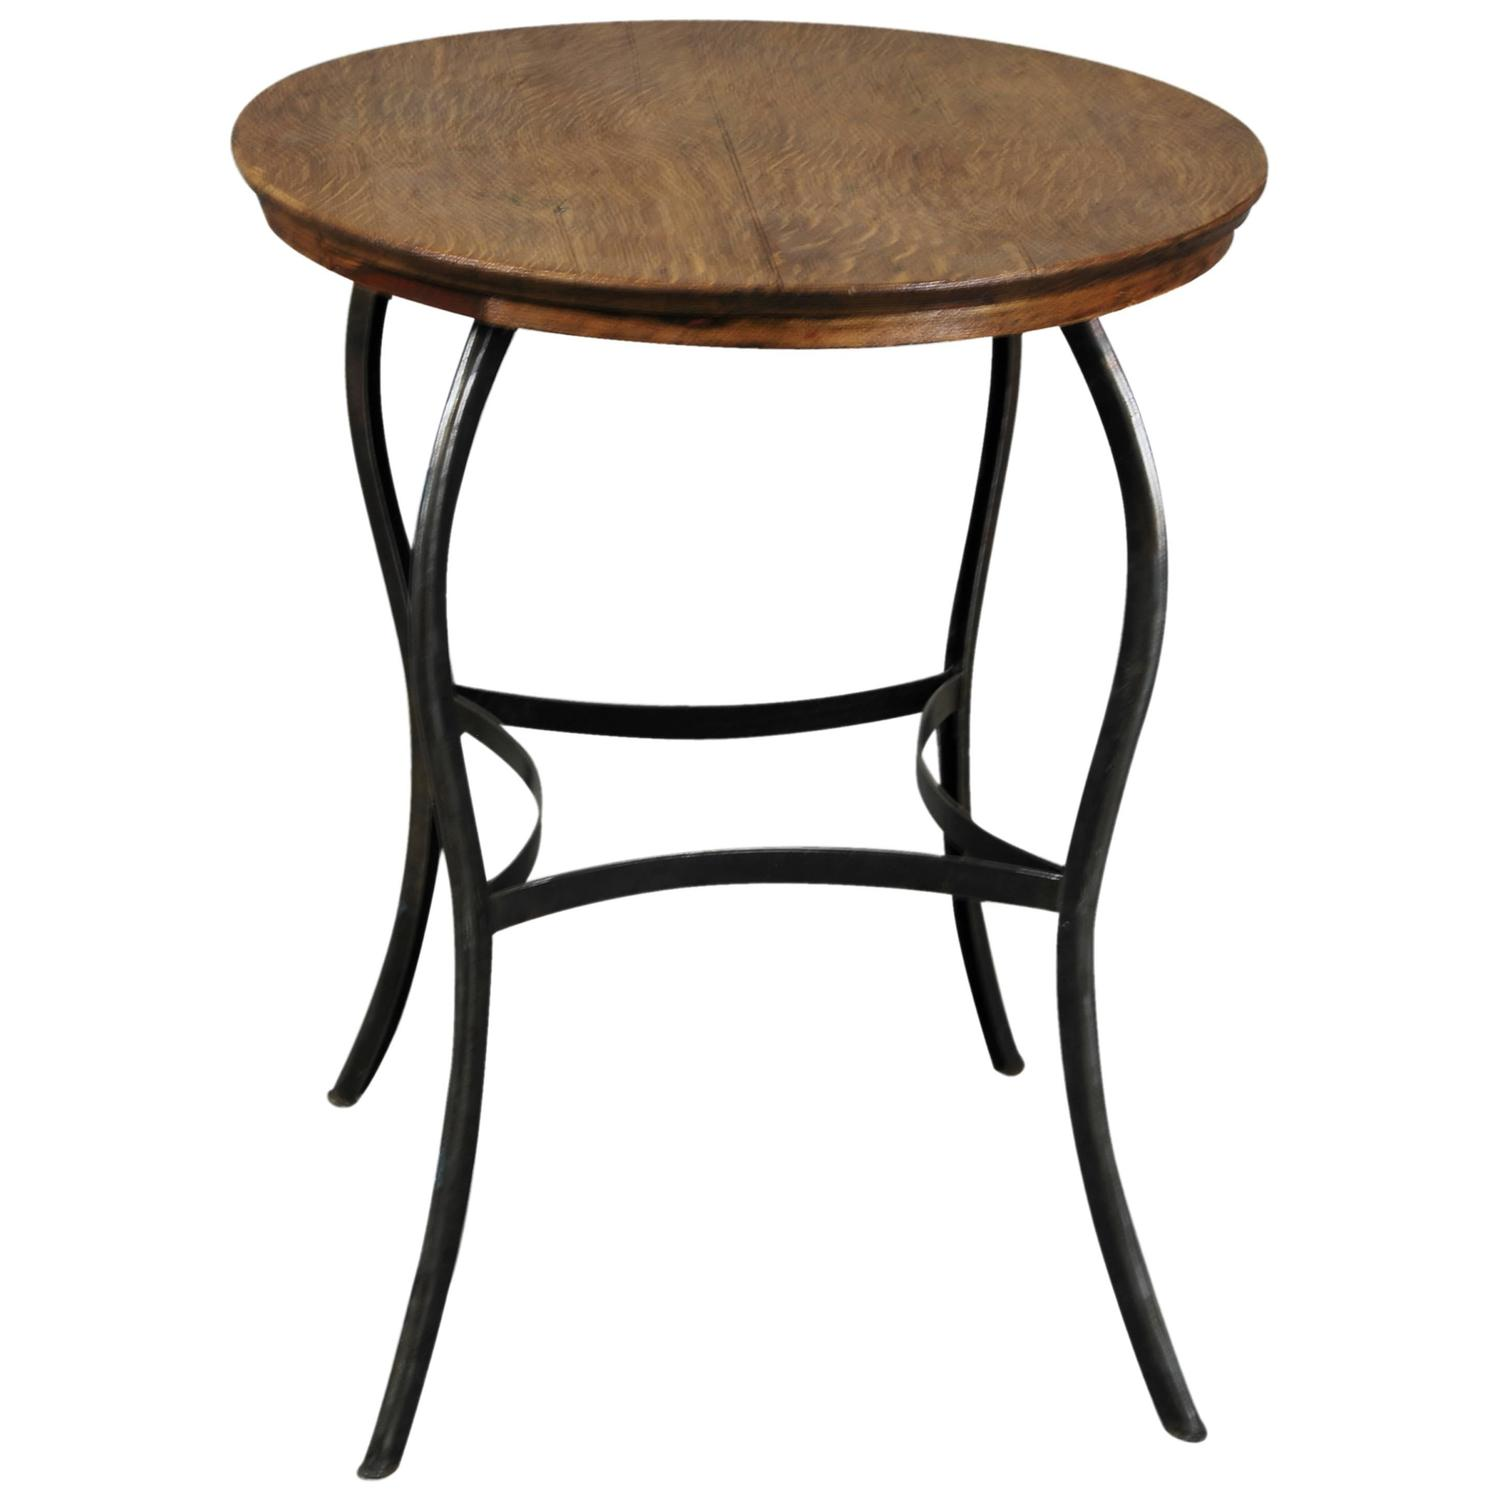 1920 Toledo Industrial Side Table At 1stdibs